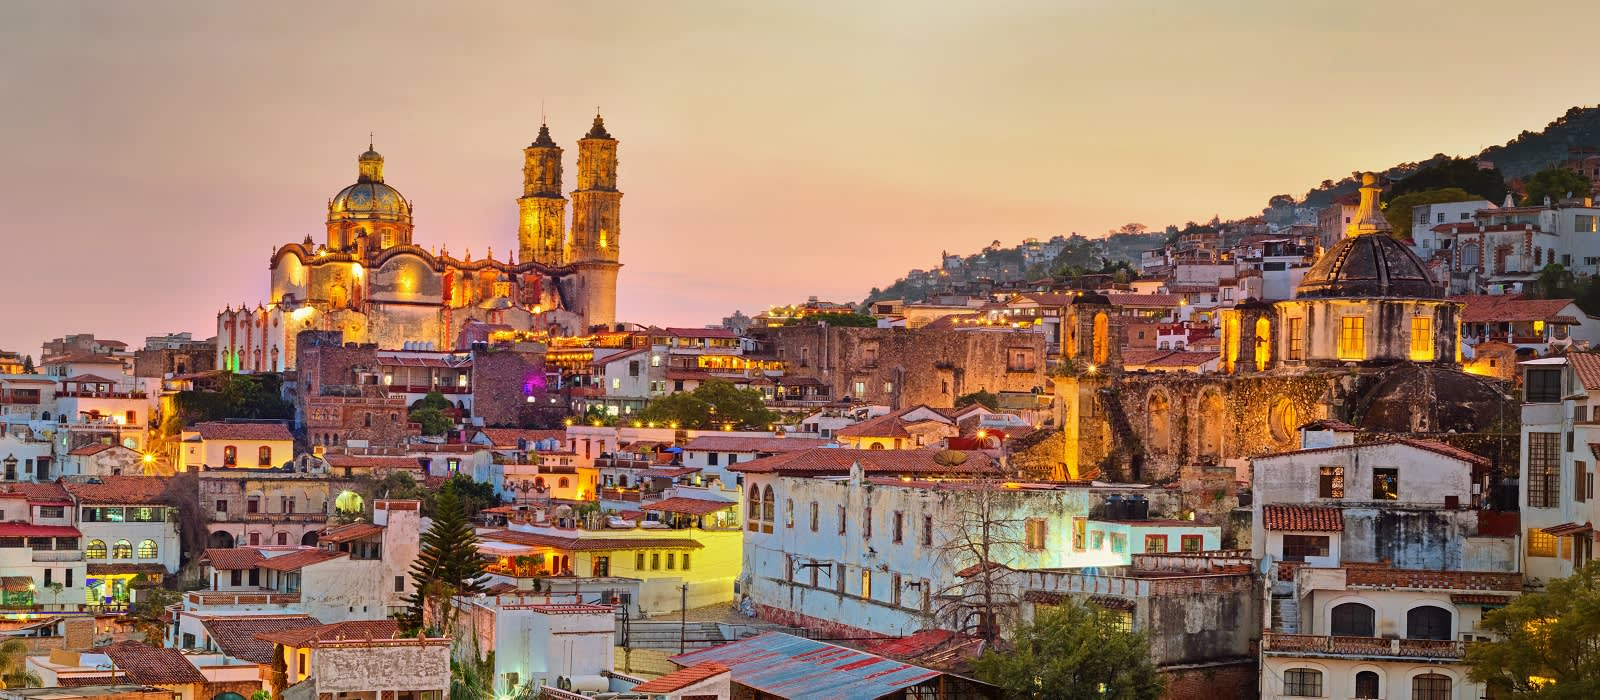 Enchanting Travels Mexico Tours Panorama of Taxco city at sunset in Mexico - things to do in Mexico